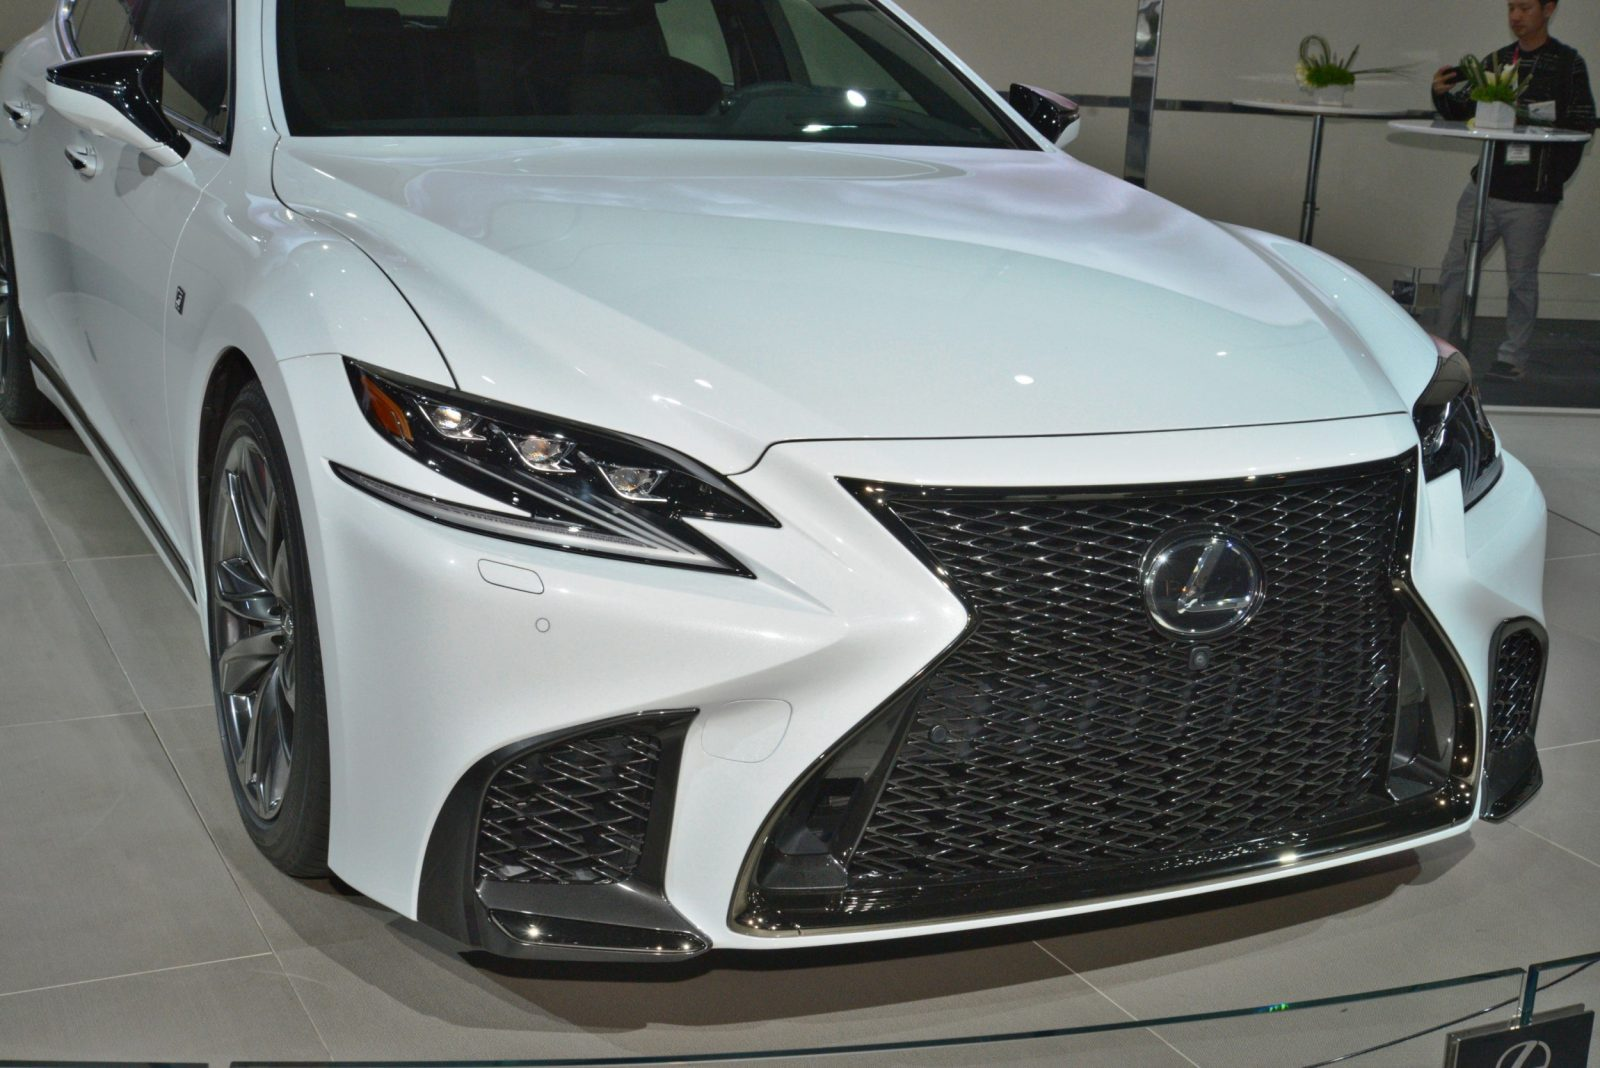 2018 Lexus LS500 F Sport - Air-Ride, Active 4WS + Live ...